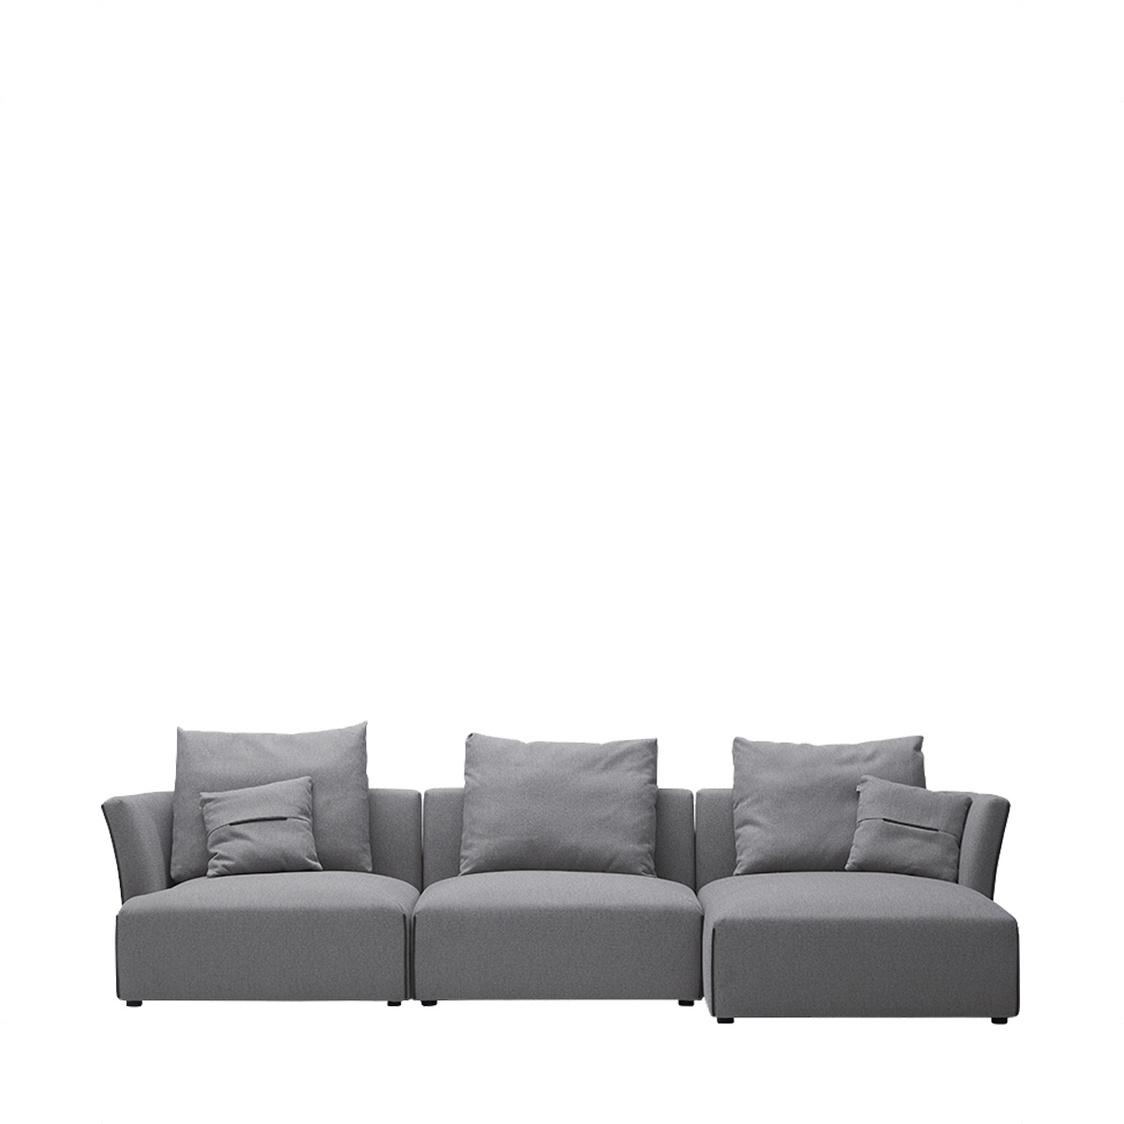 Iloom Bergen Couch Right Fabric HCS744CRF-2P1